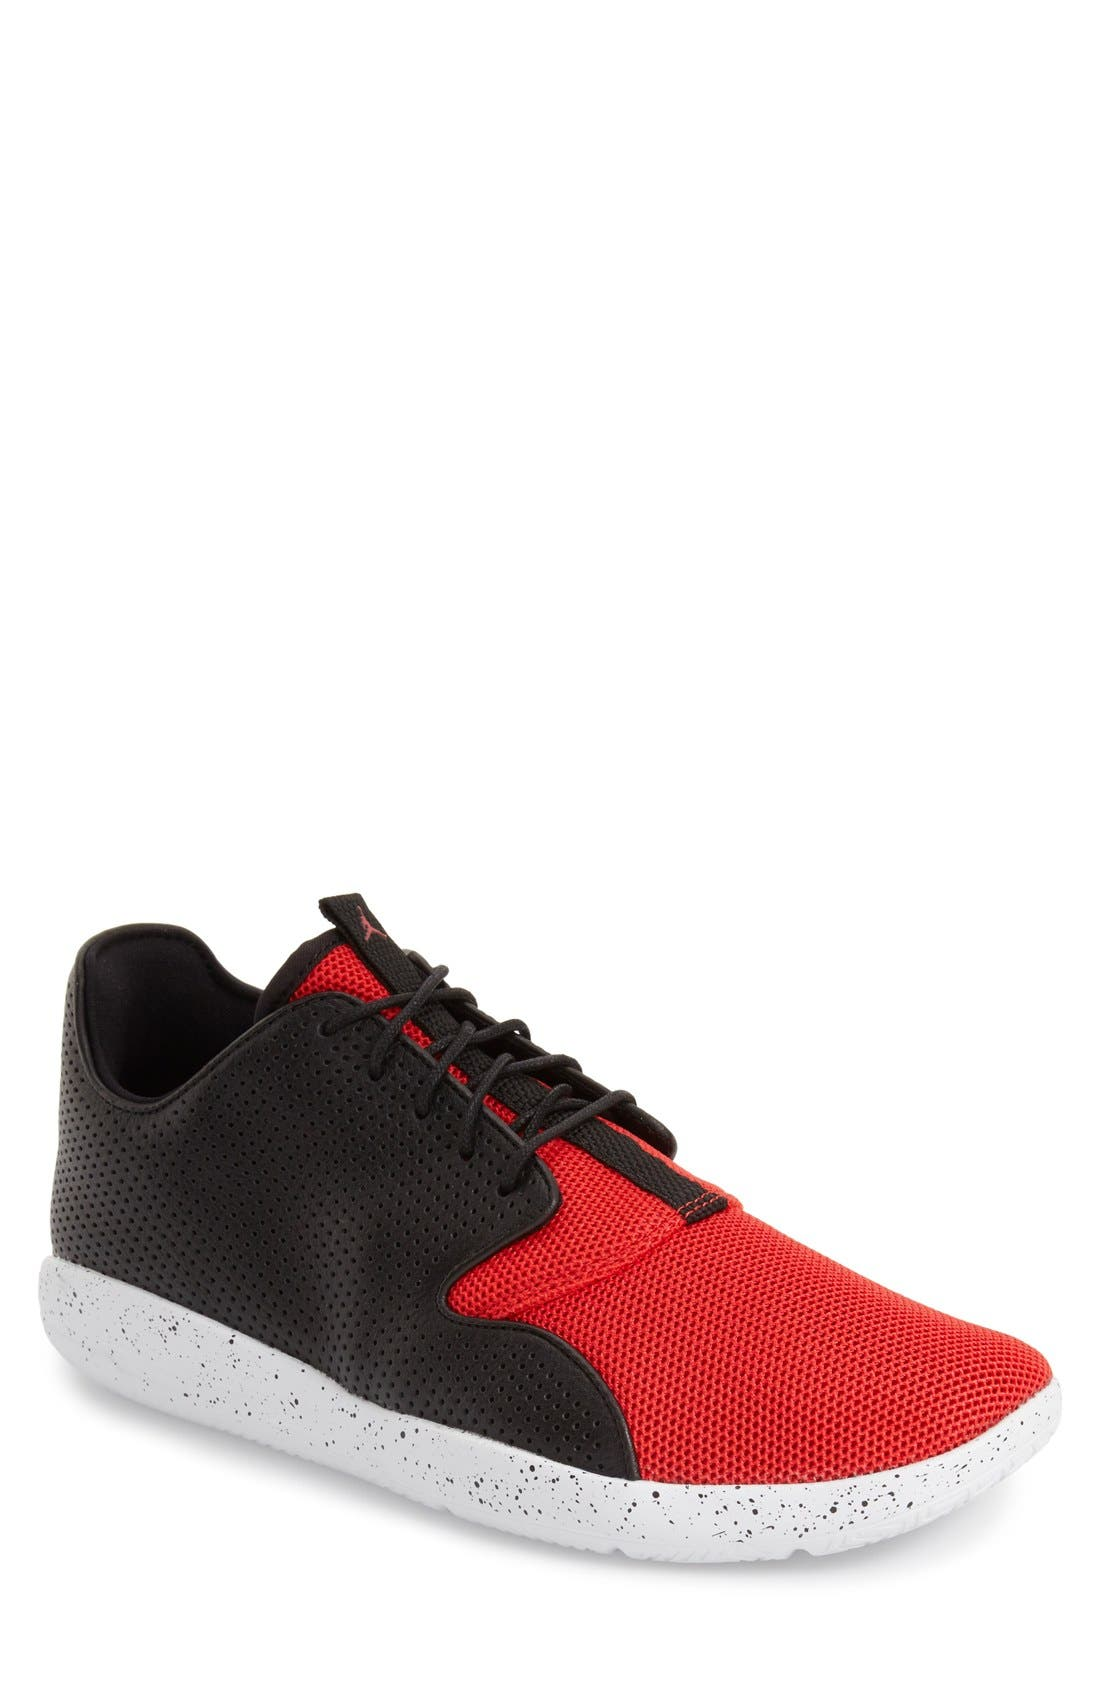 Alternate Image 1 Selected - Nike 'Jordan Eclipse' Sneaker (Men)